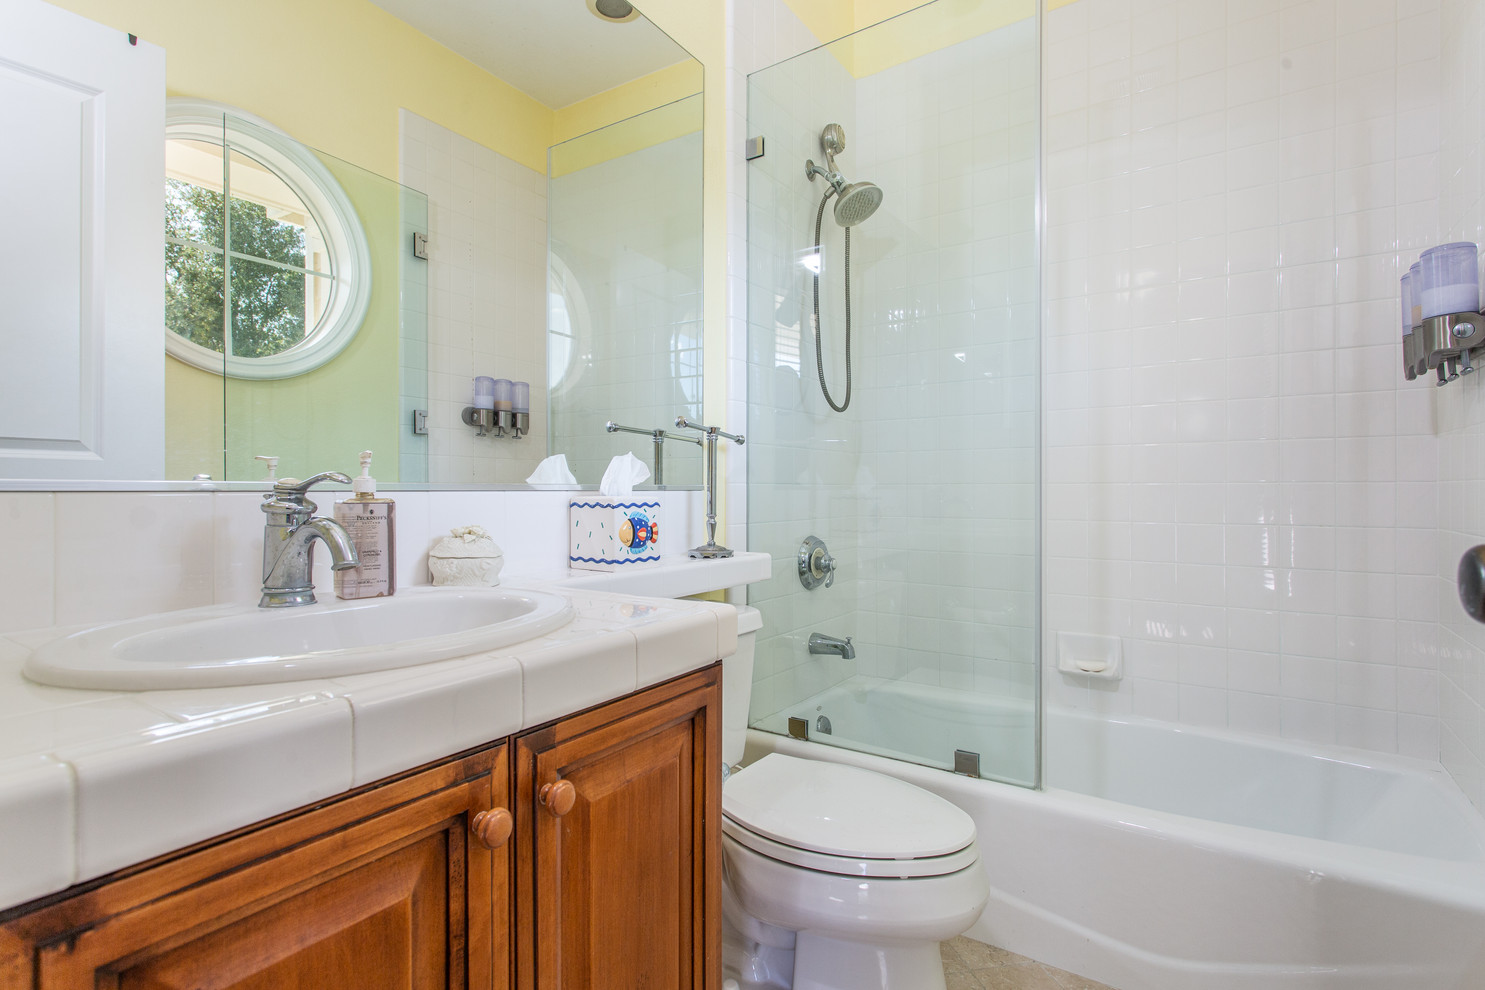 1543 Sycamore Canyon Dr - HsH Prod.-43.j